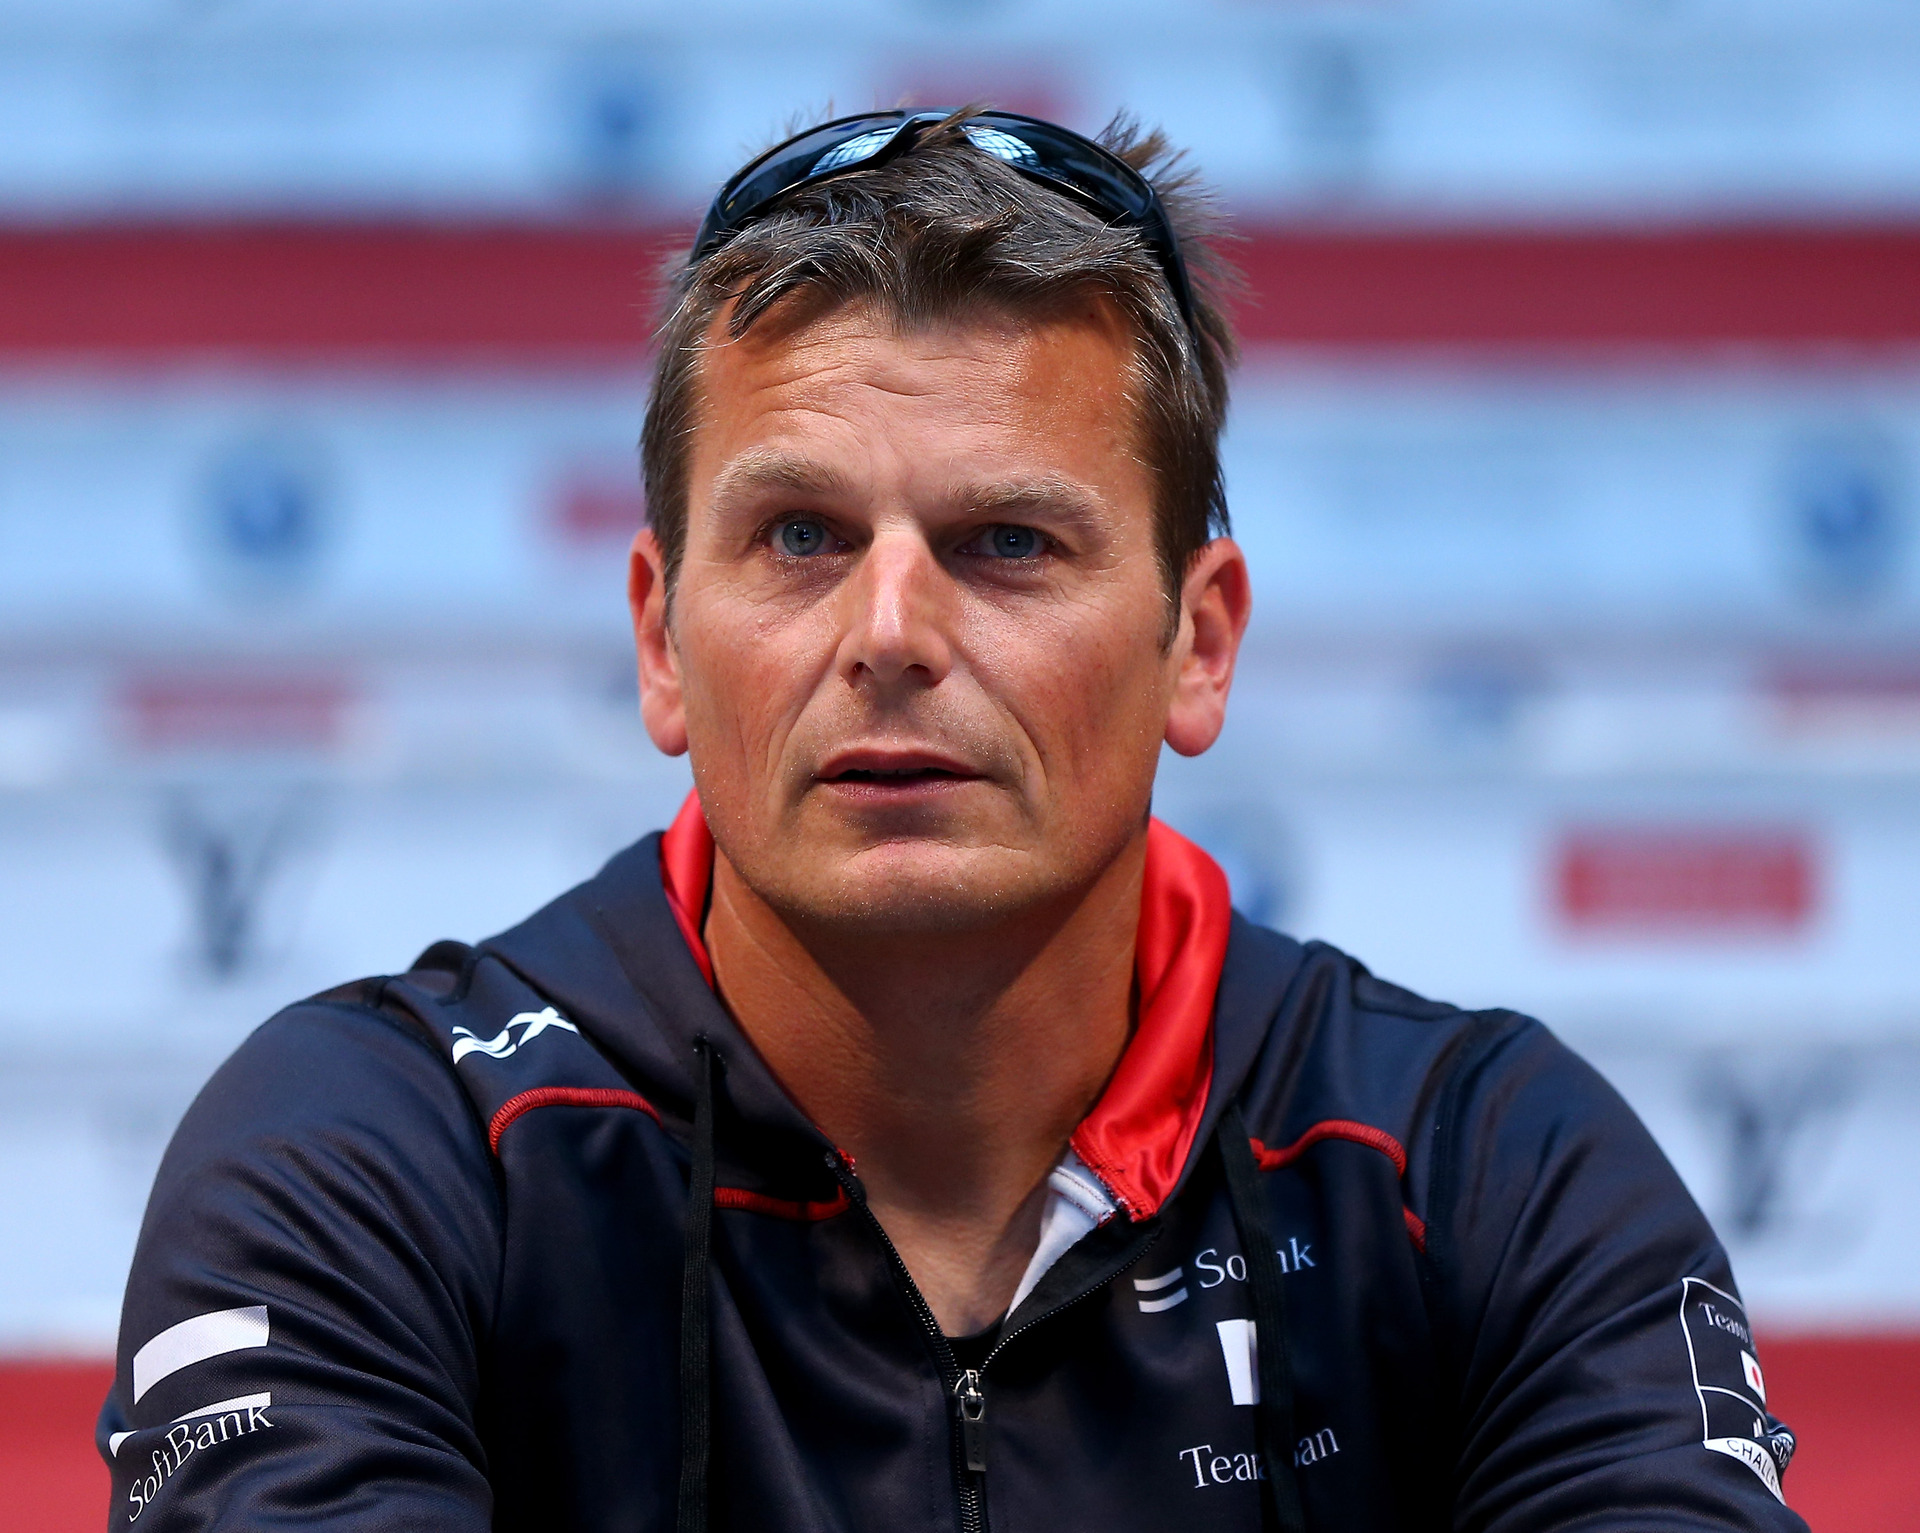 America's Cup: Dean Barker disappointed but not surprised by low number of challengers